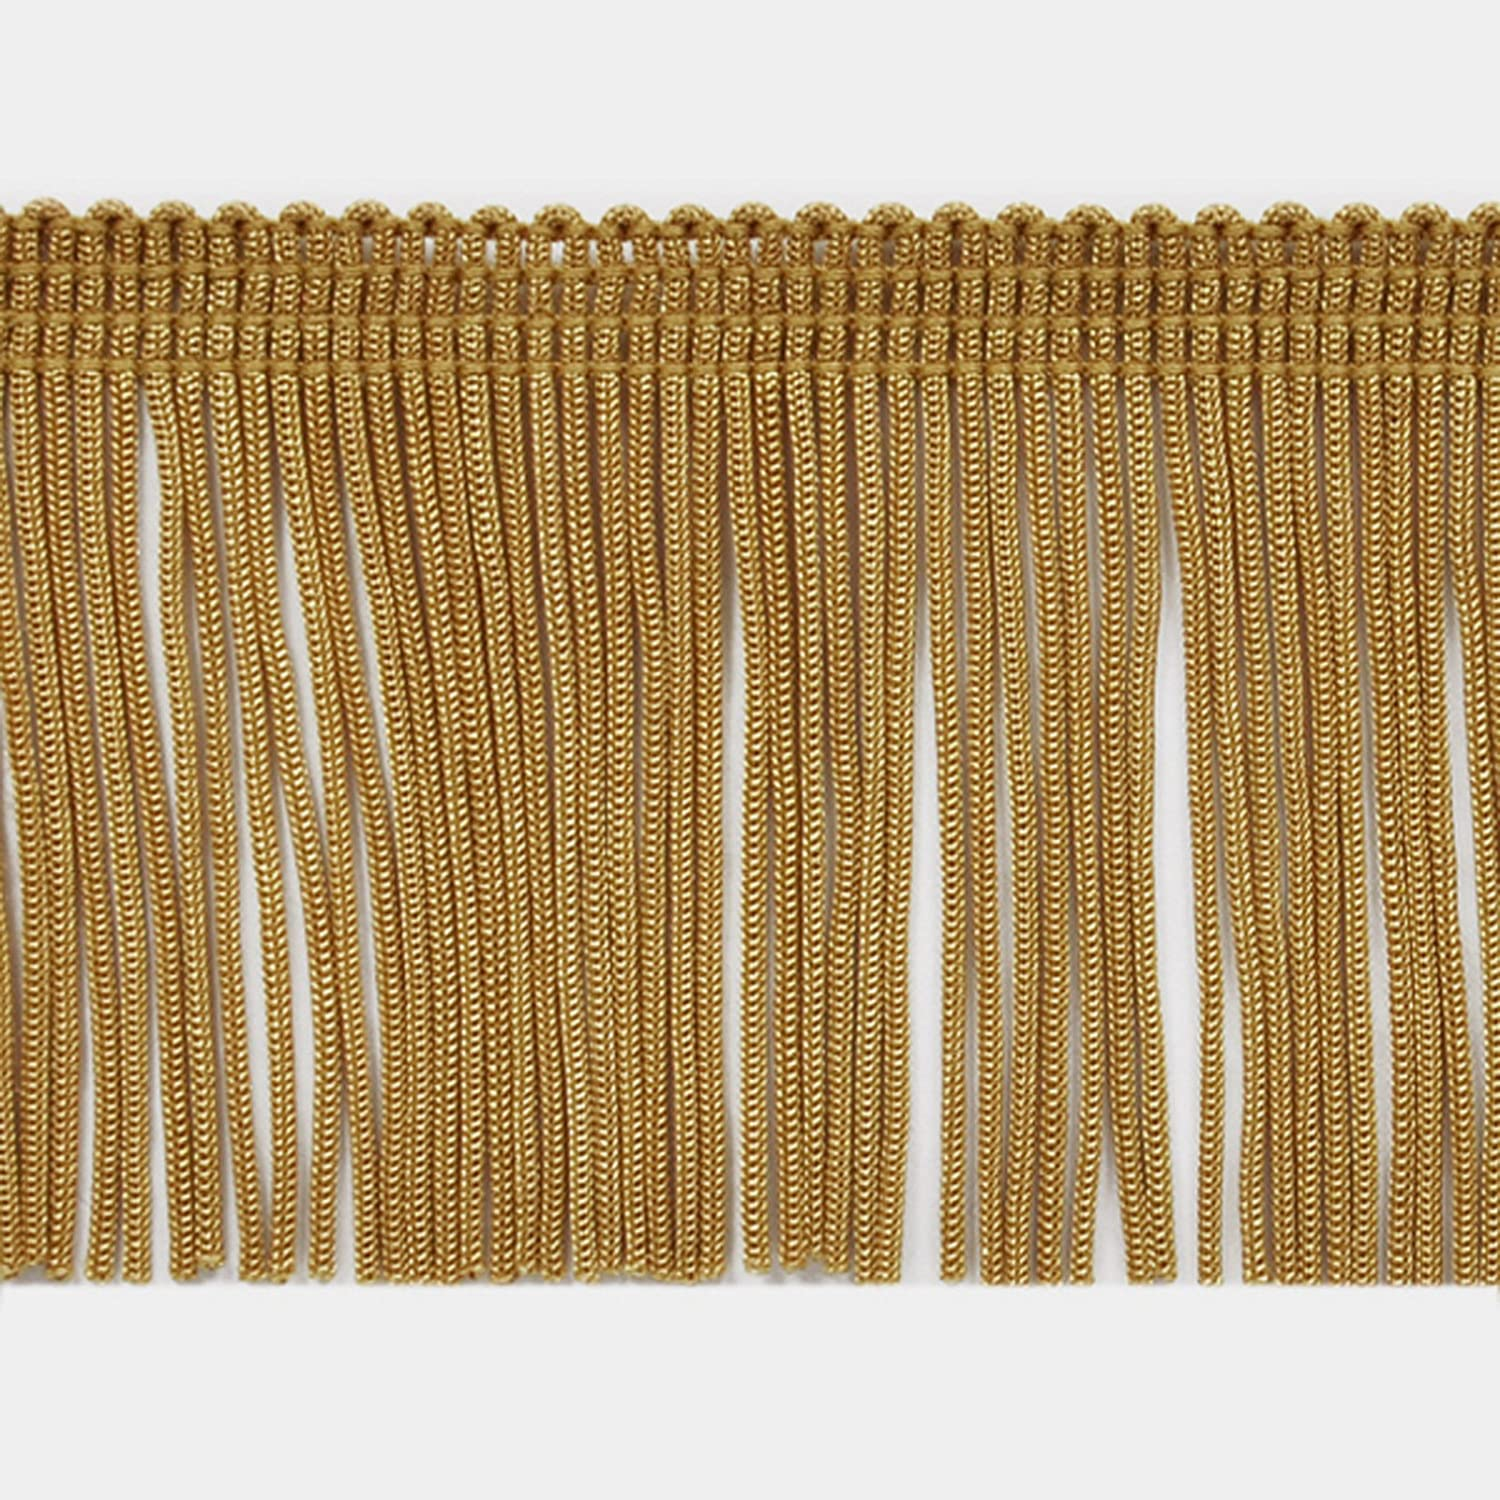 2 Chainette Fringe Trim Gold by the Yard